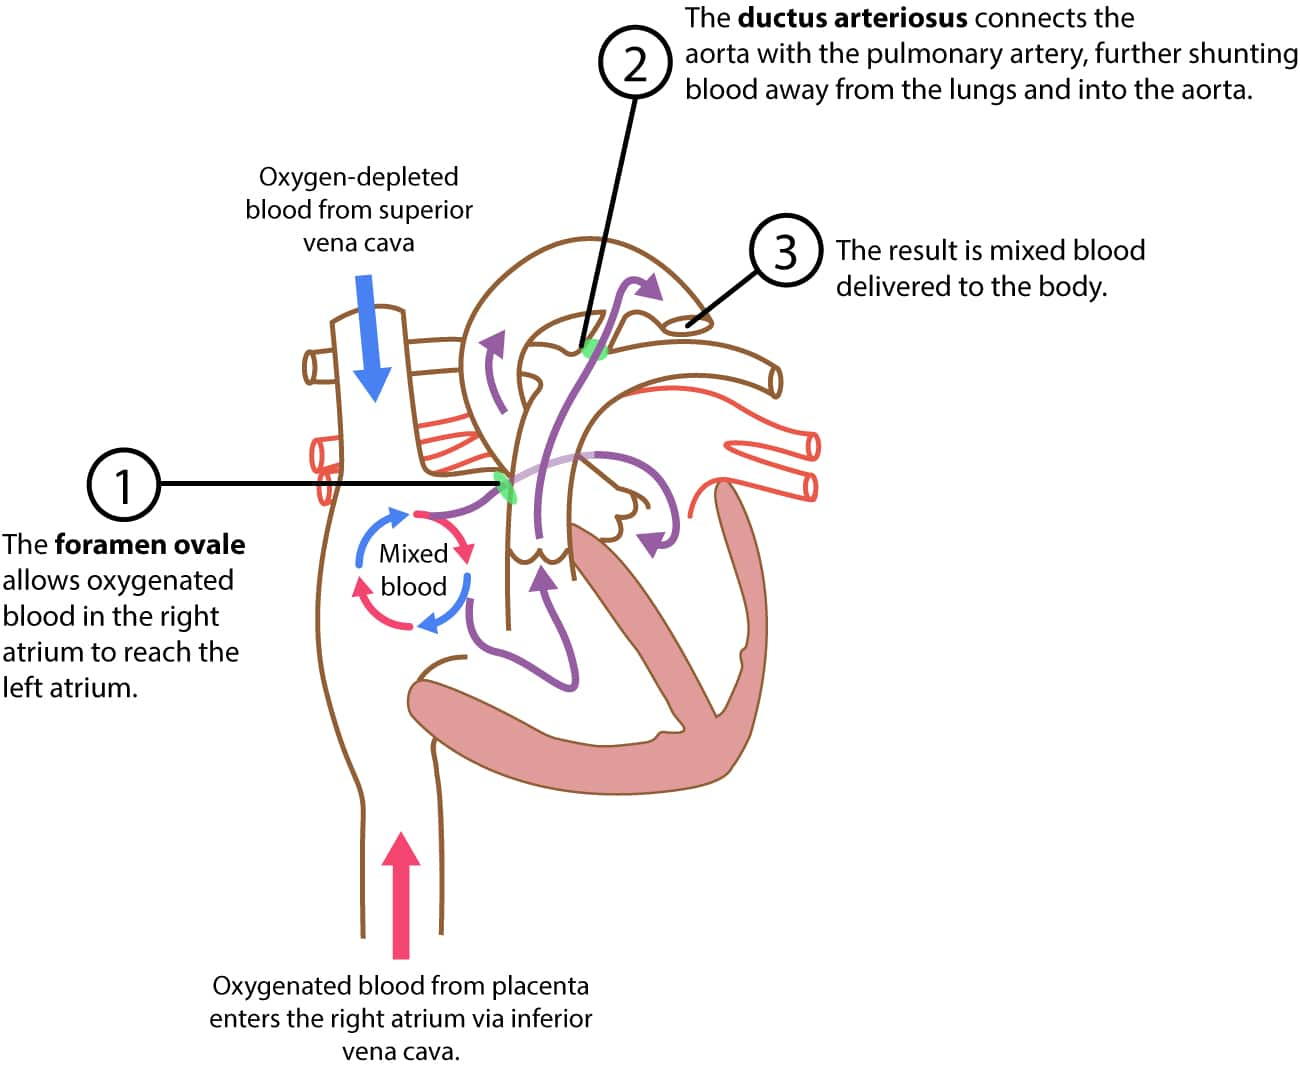 Figure 2. The fetal circulation.